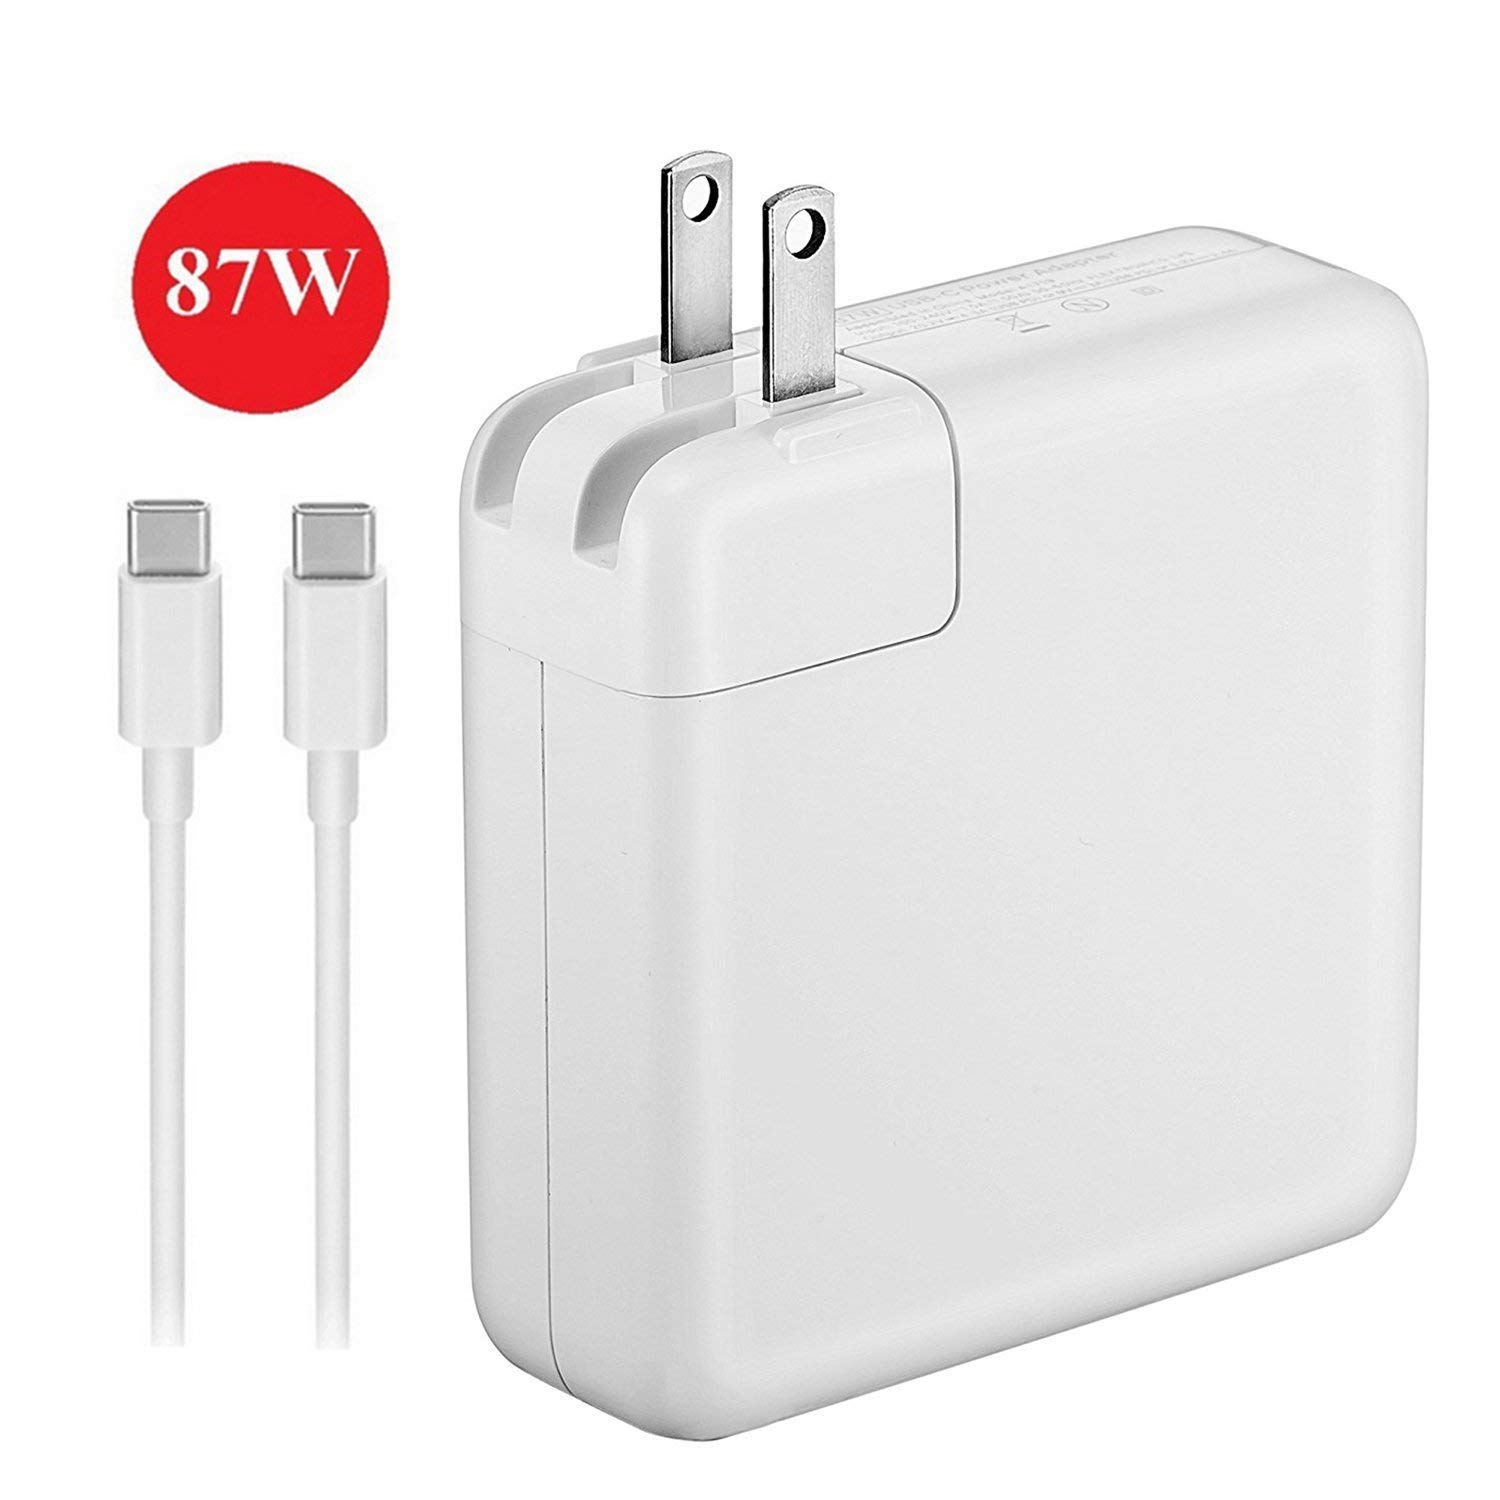 Hypercon Heavy Duty Certified 87W USB Type C Power Supply Adapter Charger and 3.1 USB-C Charge Cable for Pro 15 Inch Thunderbolt 3 2016 2017 2018 MNF82LL/A A1708 A1719 - White